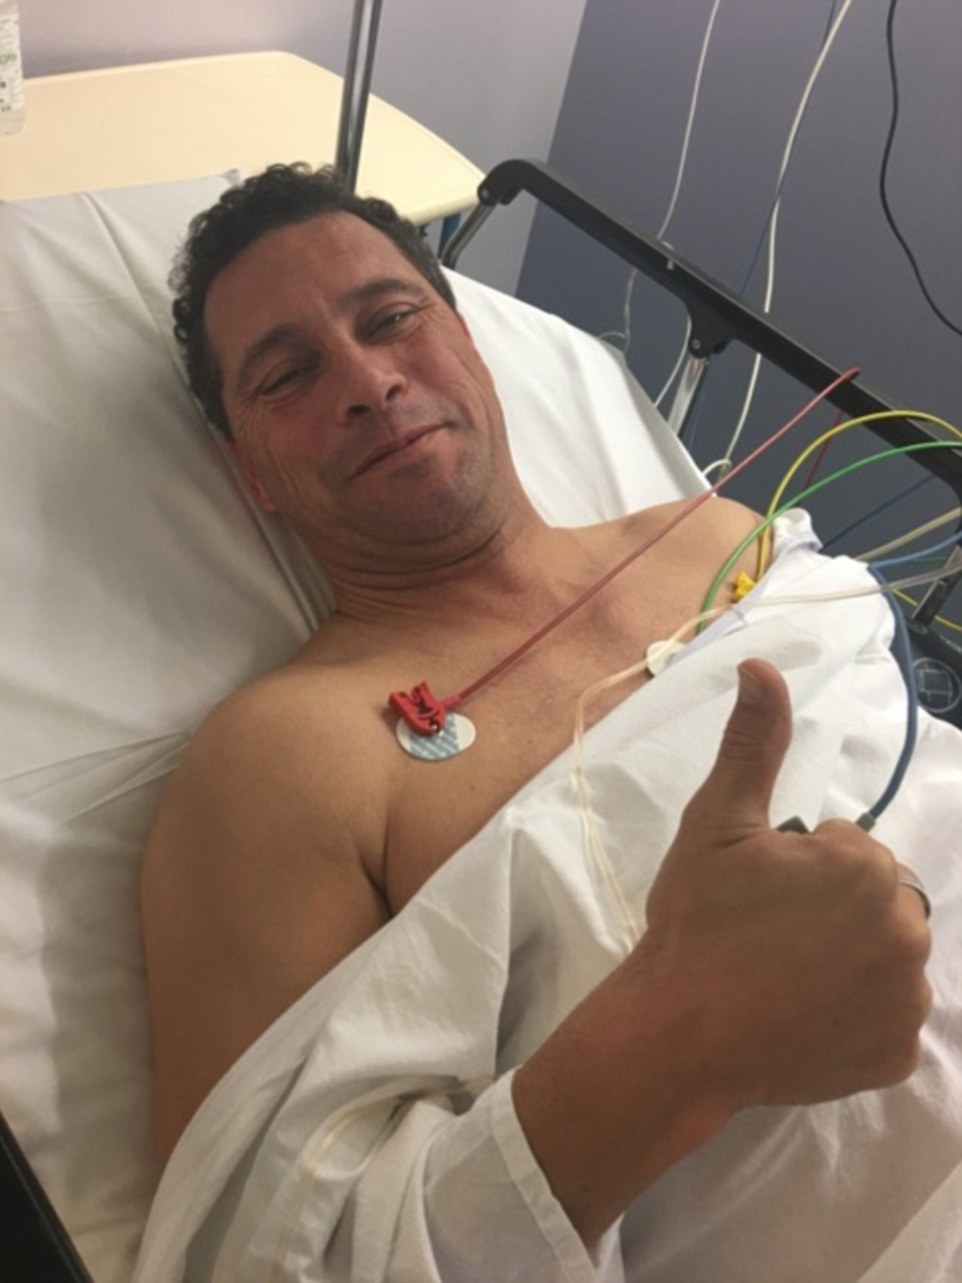 Steven Woolfe, pictured, gave a thumbs up gesture in hospital as he recovers from injuries sustained in a 'scuffle' following clear-the-air talks with fellow Ukip MEPs in Strasbourg